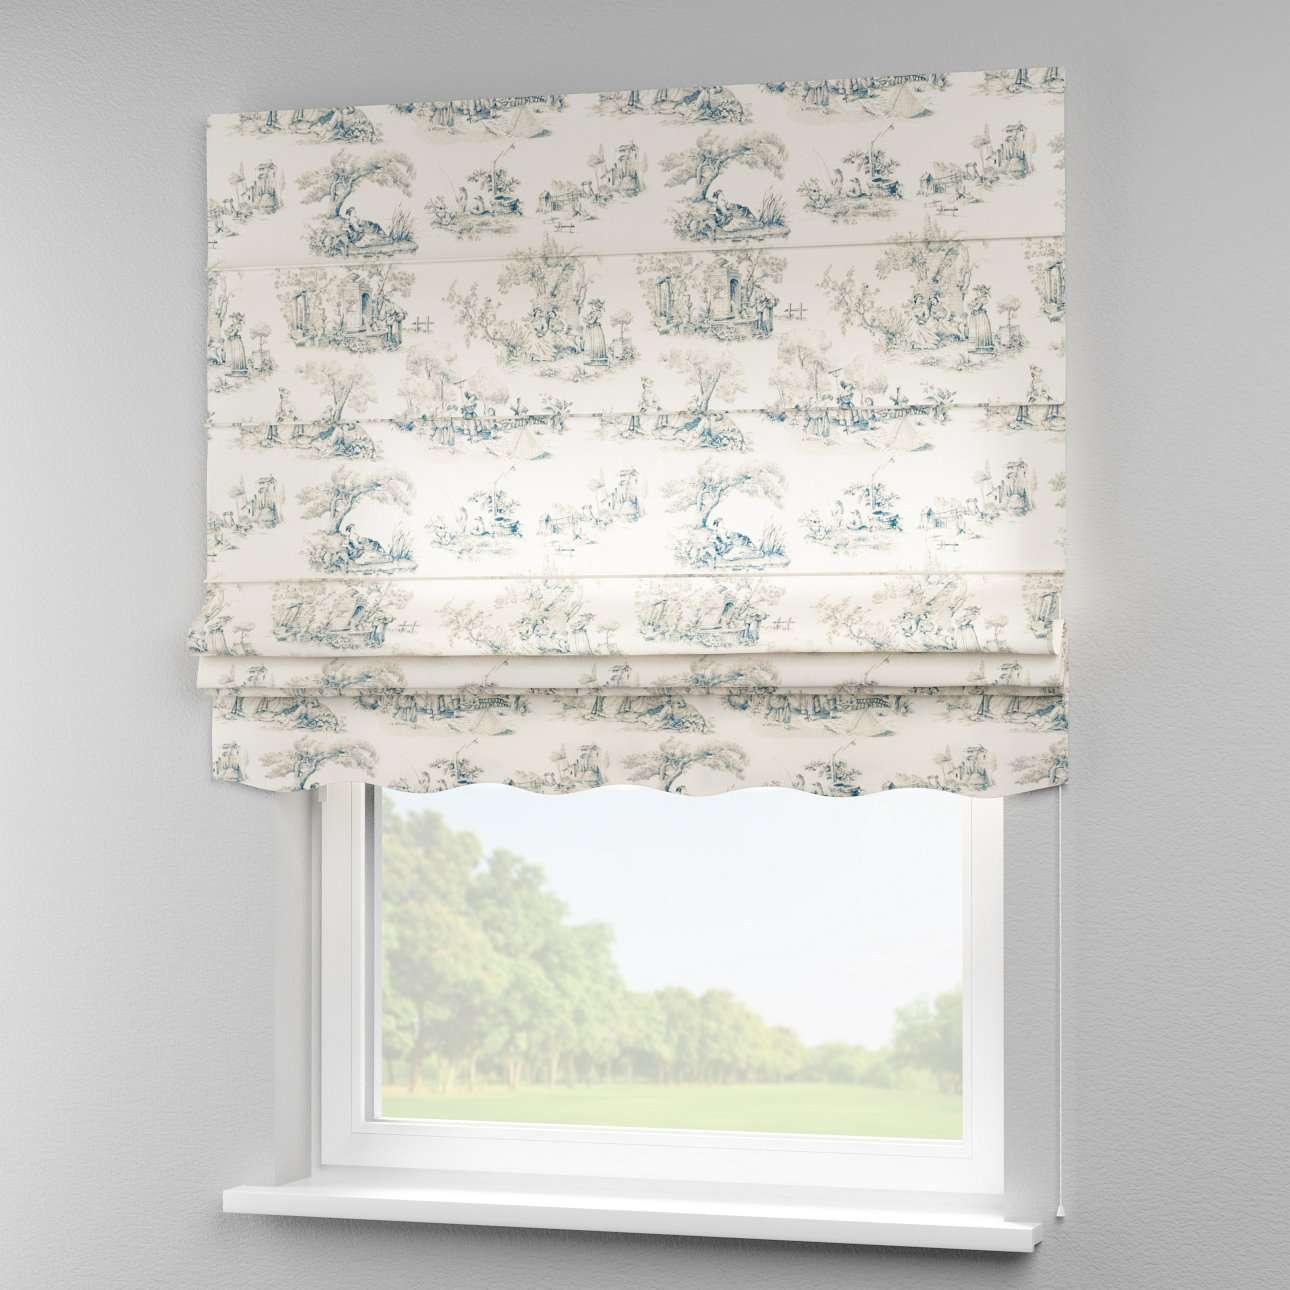 Florence roman blind  80 x 170 cm (31.5 x 67 inch) in collection Avinon, fabric: 132-66